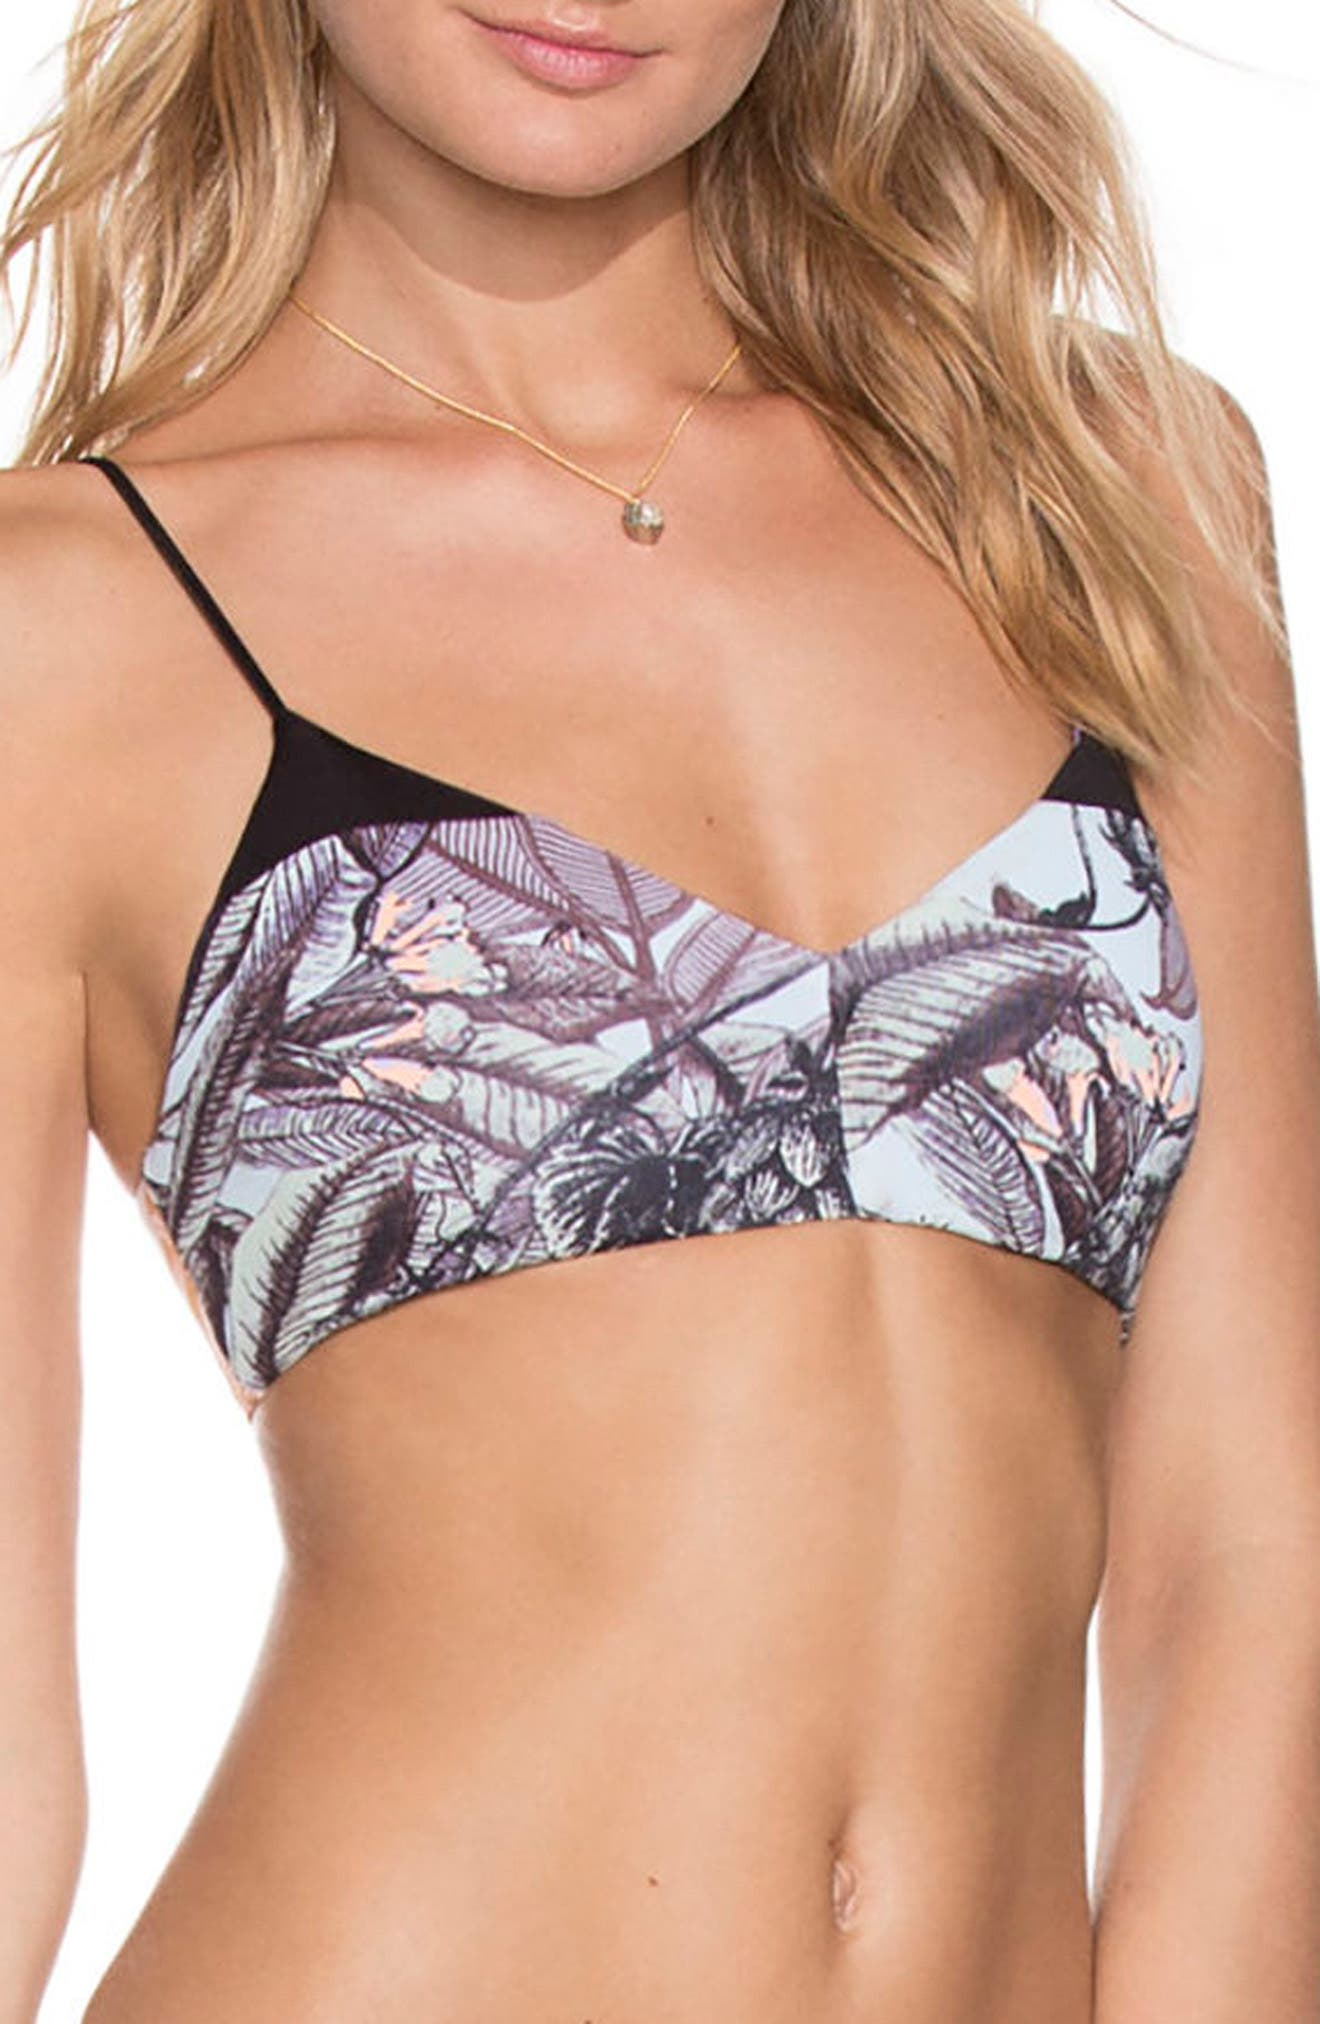 Afterlife Island Reversible Bikini Top,                         Main,                         color, Black Multi